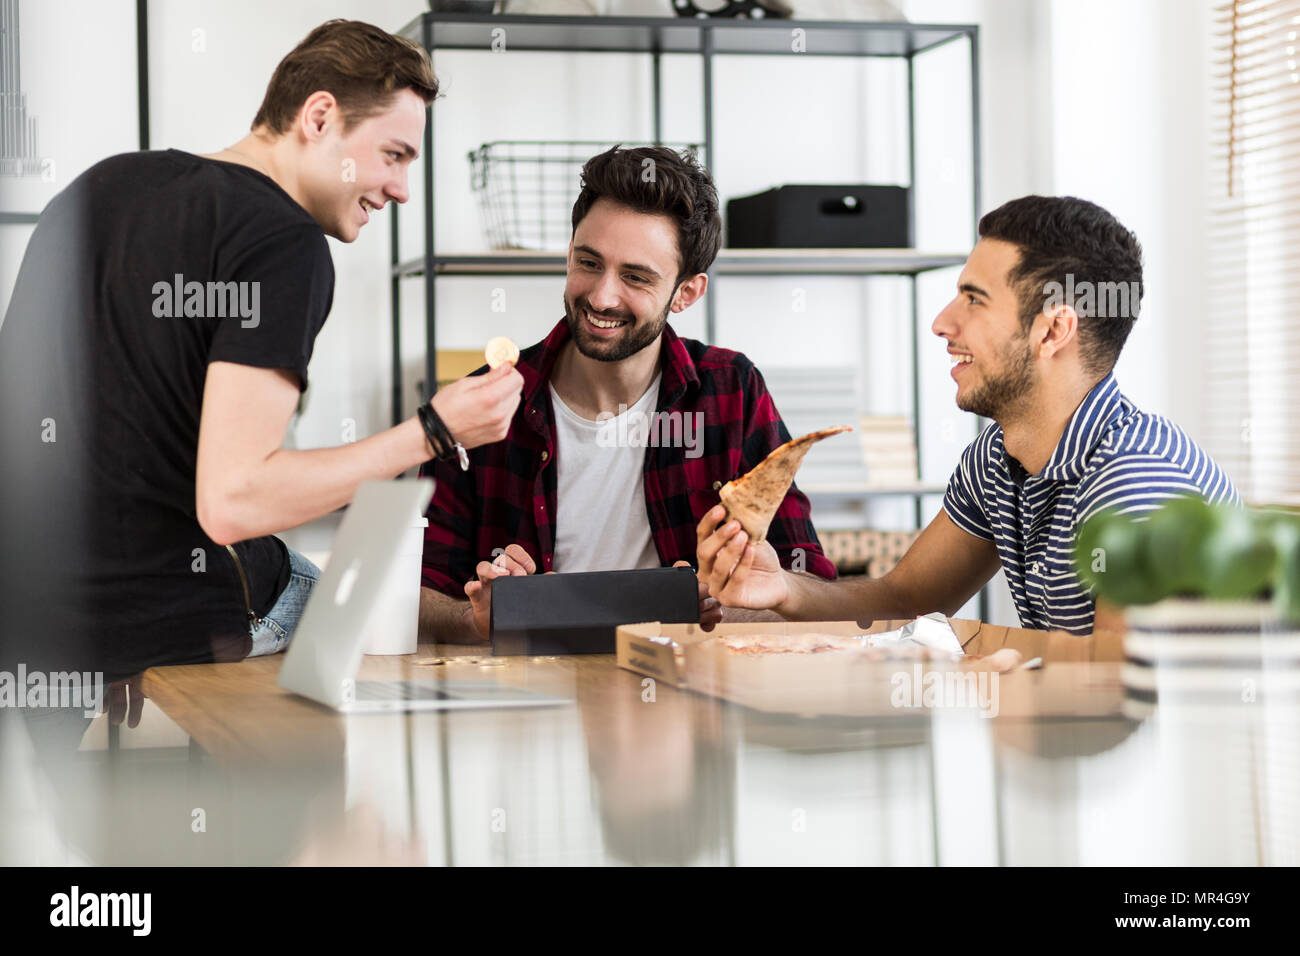 Smiling friends eating pizza and talking about digital cryptocurrency - Stock Image